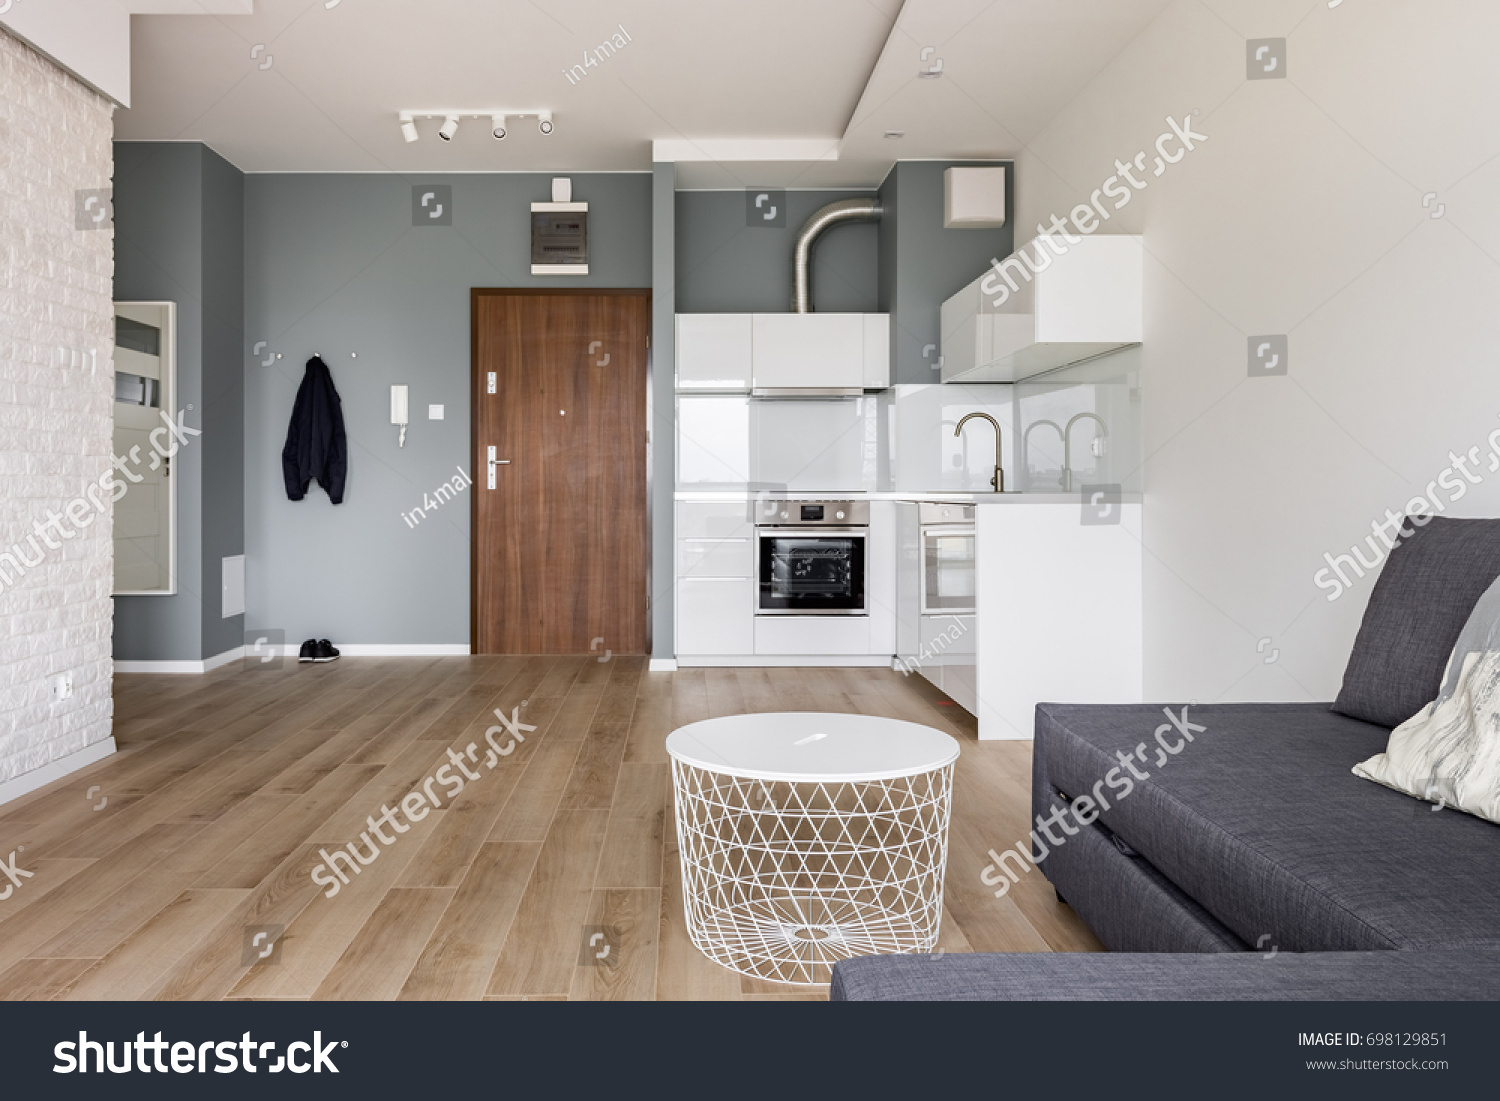 Amazing Modern Studio Flat With Small Kitchen Sofa And Round Coffee Table  With Kchensofa Modern